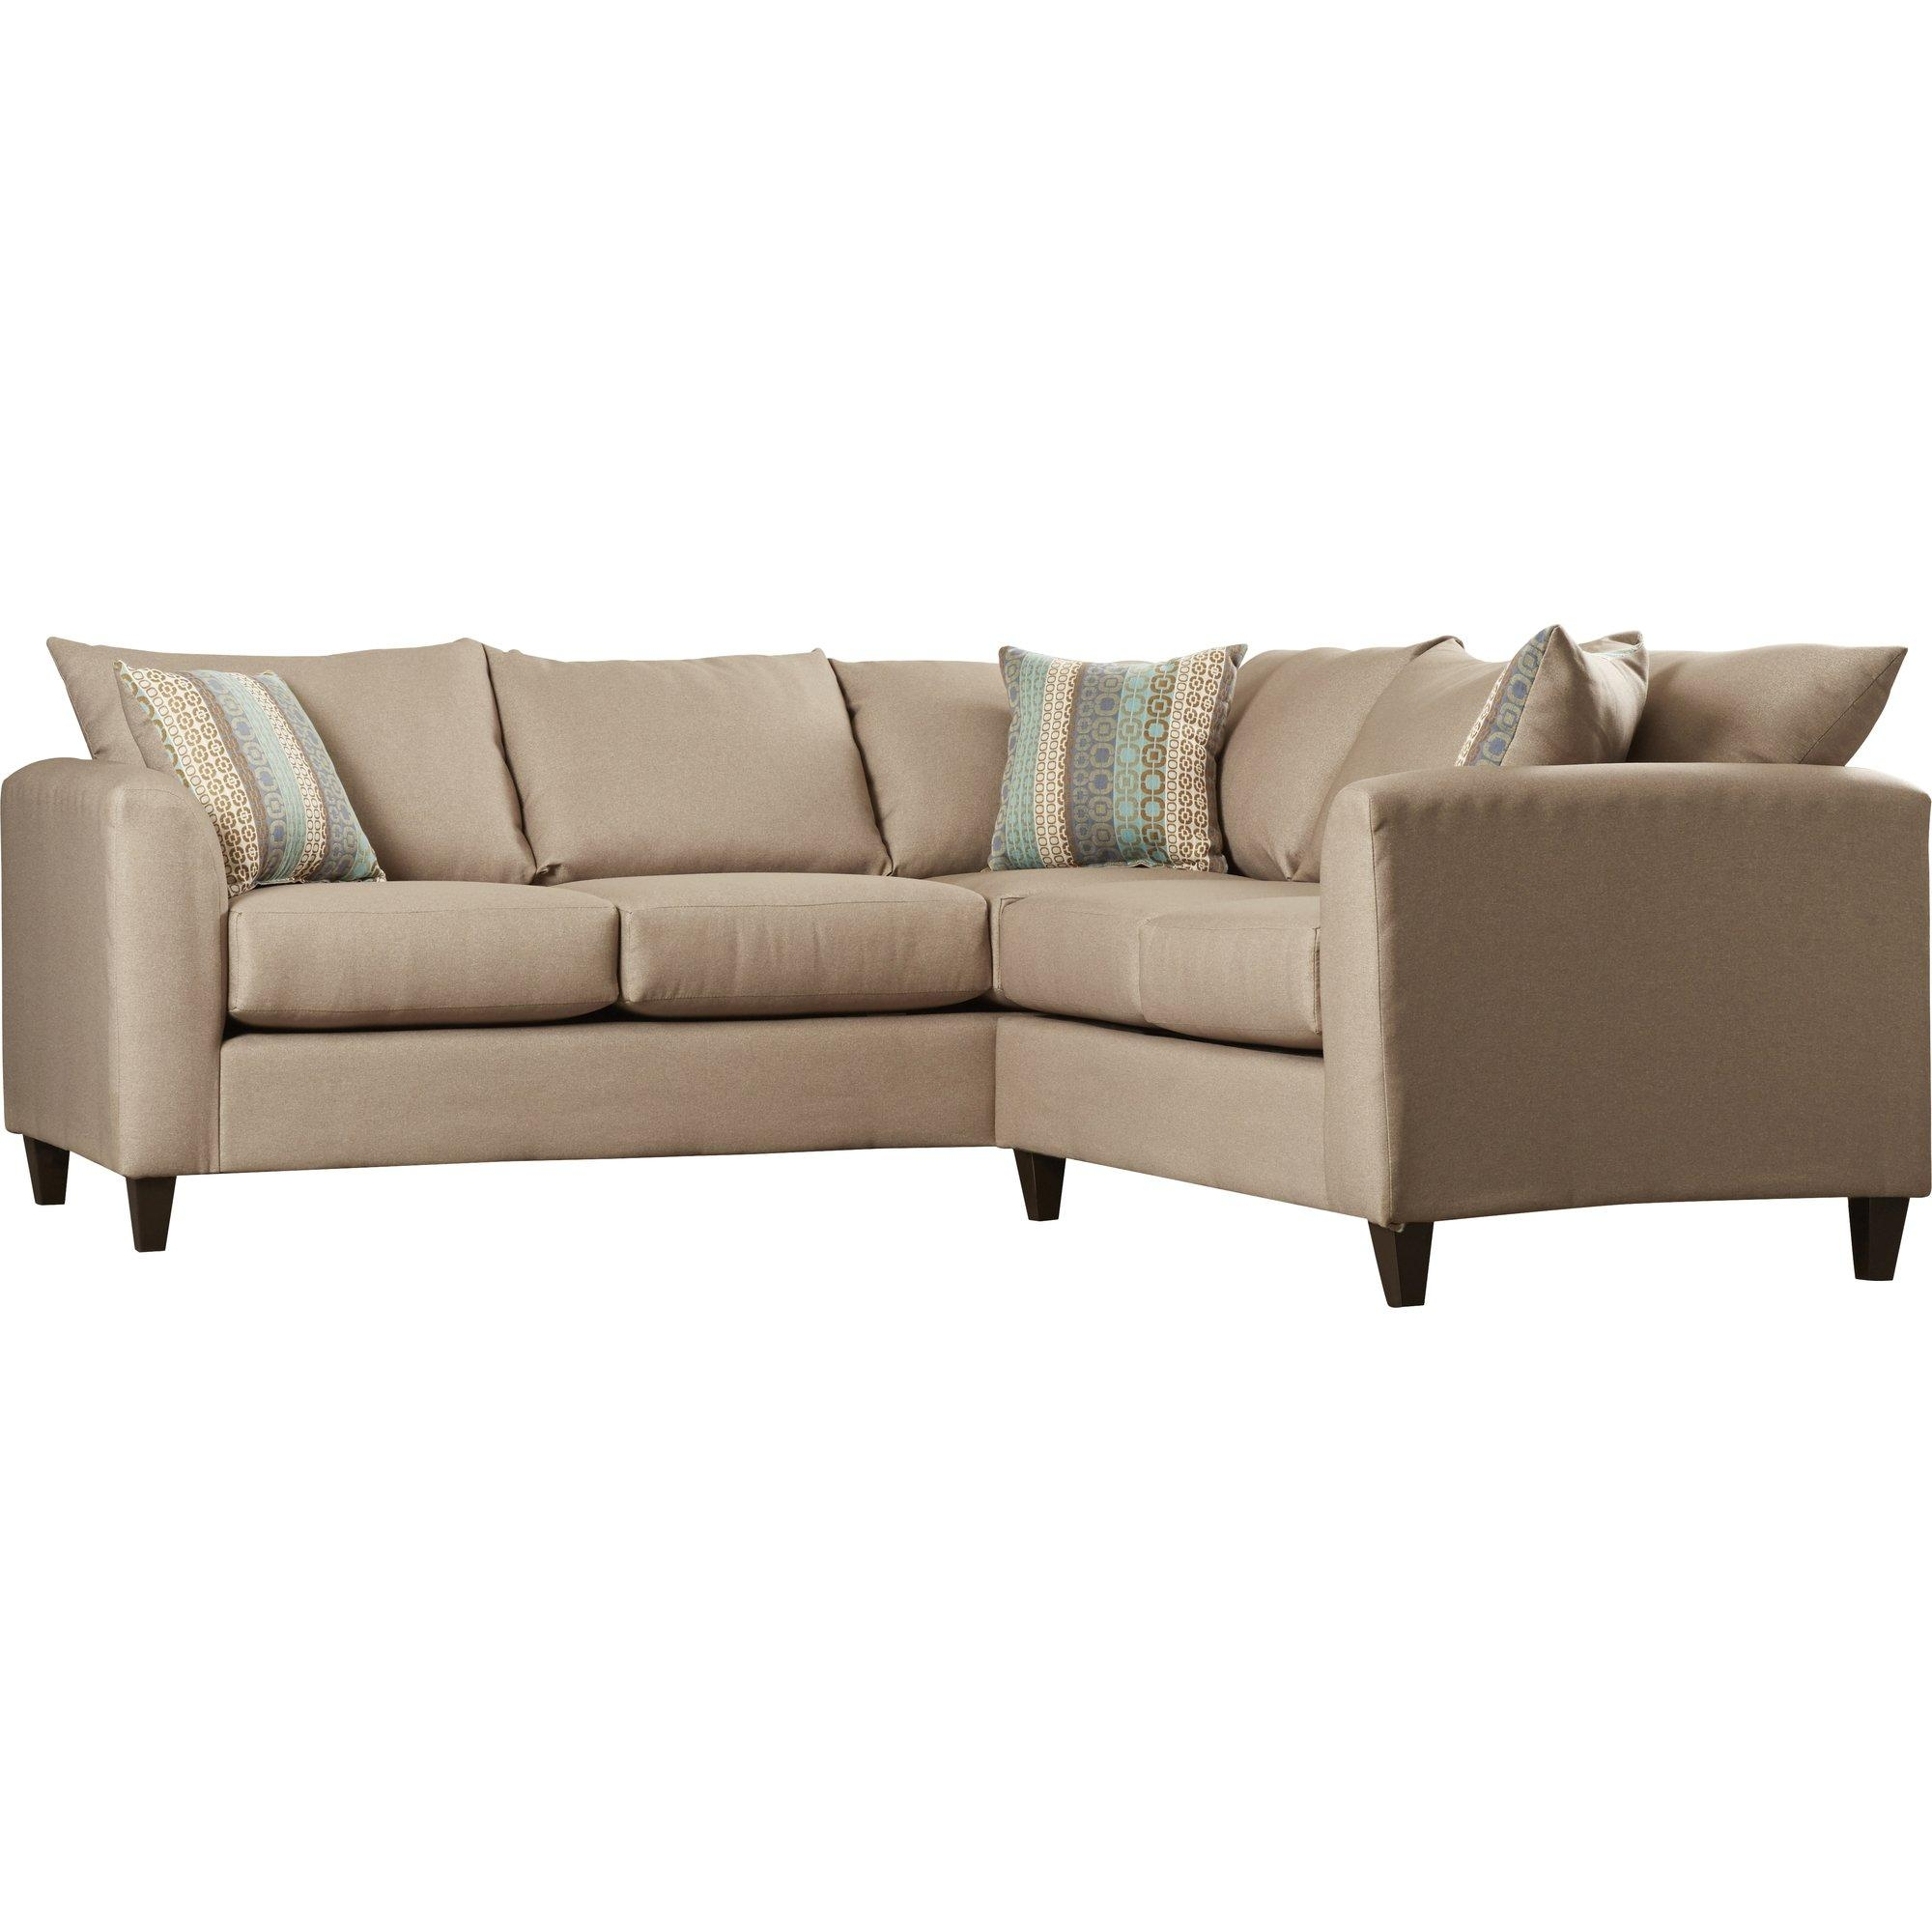 Beachcrest Home Serta Sectional & Reviews | Wayfair Supply Throughout Serta Sectional (View 10 of 20)